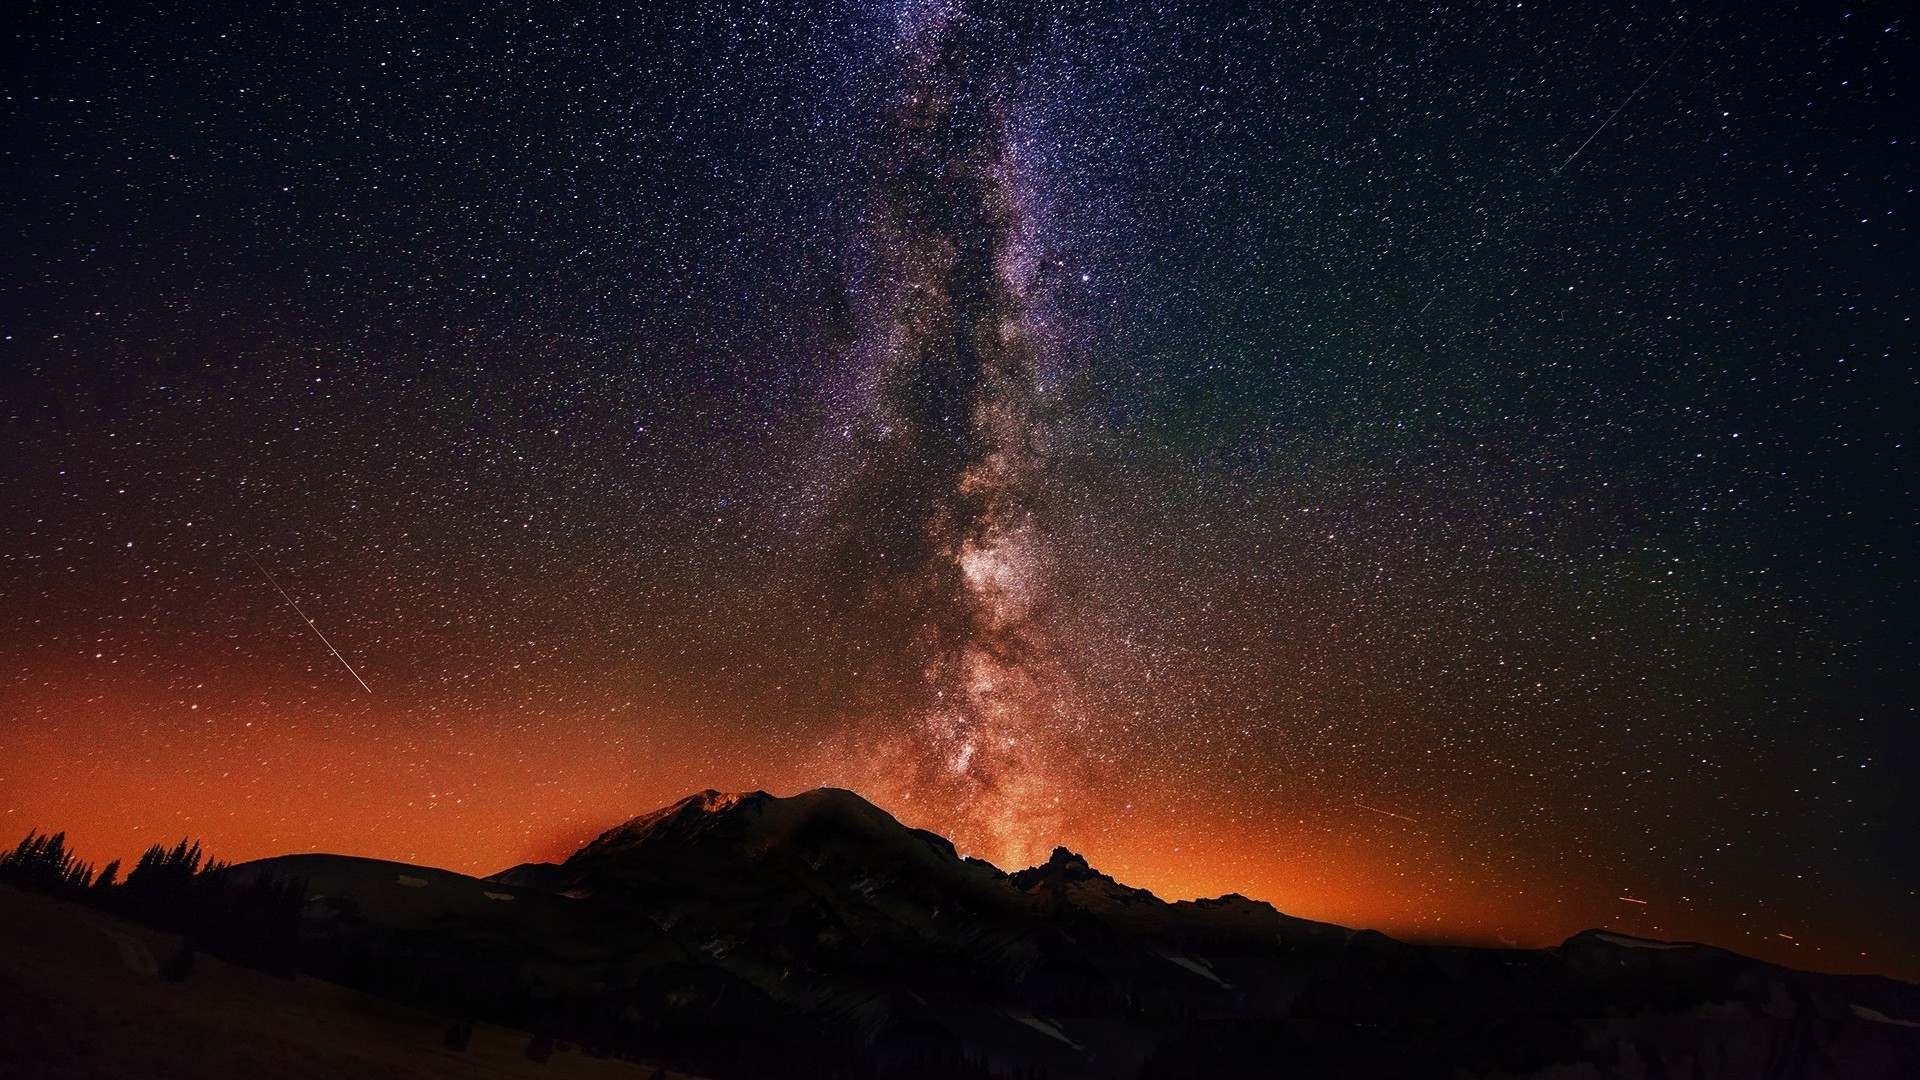 1920x1080 Galaxy Tag - Star Gazing Milky Way Galaxy Twilight COSOMS BEAUTY AWESOME  Sky Desktop Download for